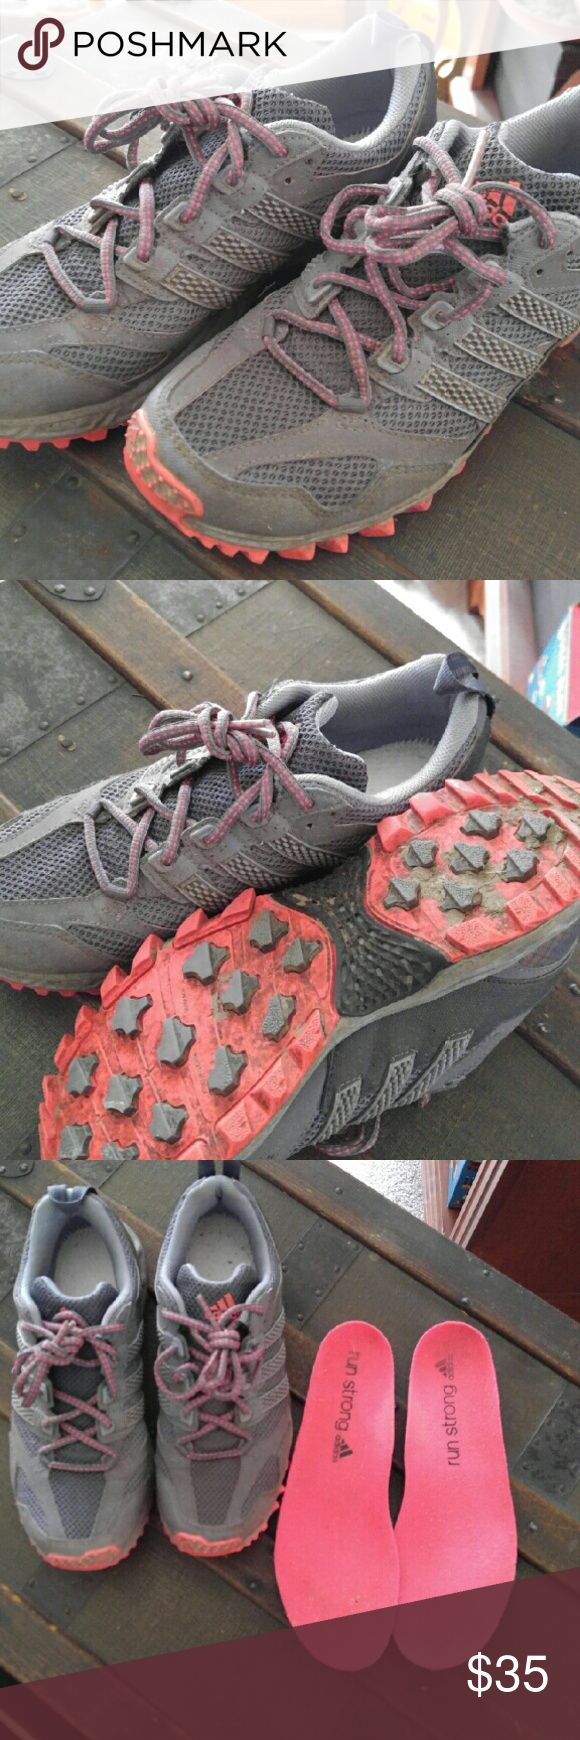 Adidas Trail Running Shoes In great/excellent condition, but dirty (trail ready). Inserts included, or room for most types of  insoles. The inserts are dirtier than they appear in the photo. Excellent traction for mud, gravel,  or uneven trails. Adidas Shoes Athletic Shoes